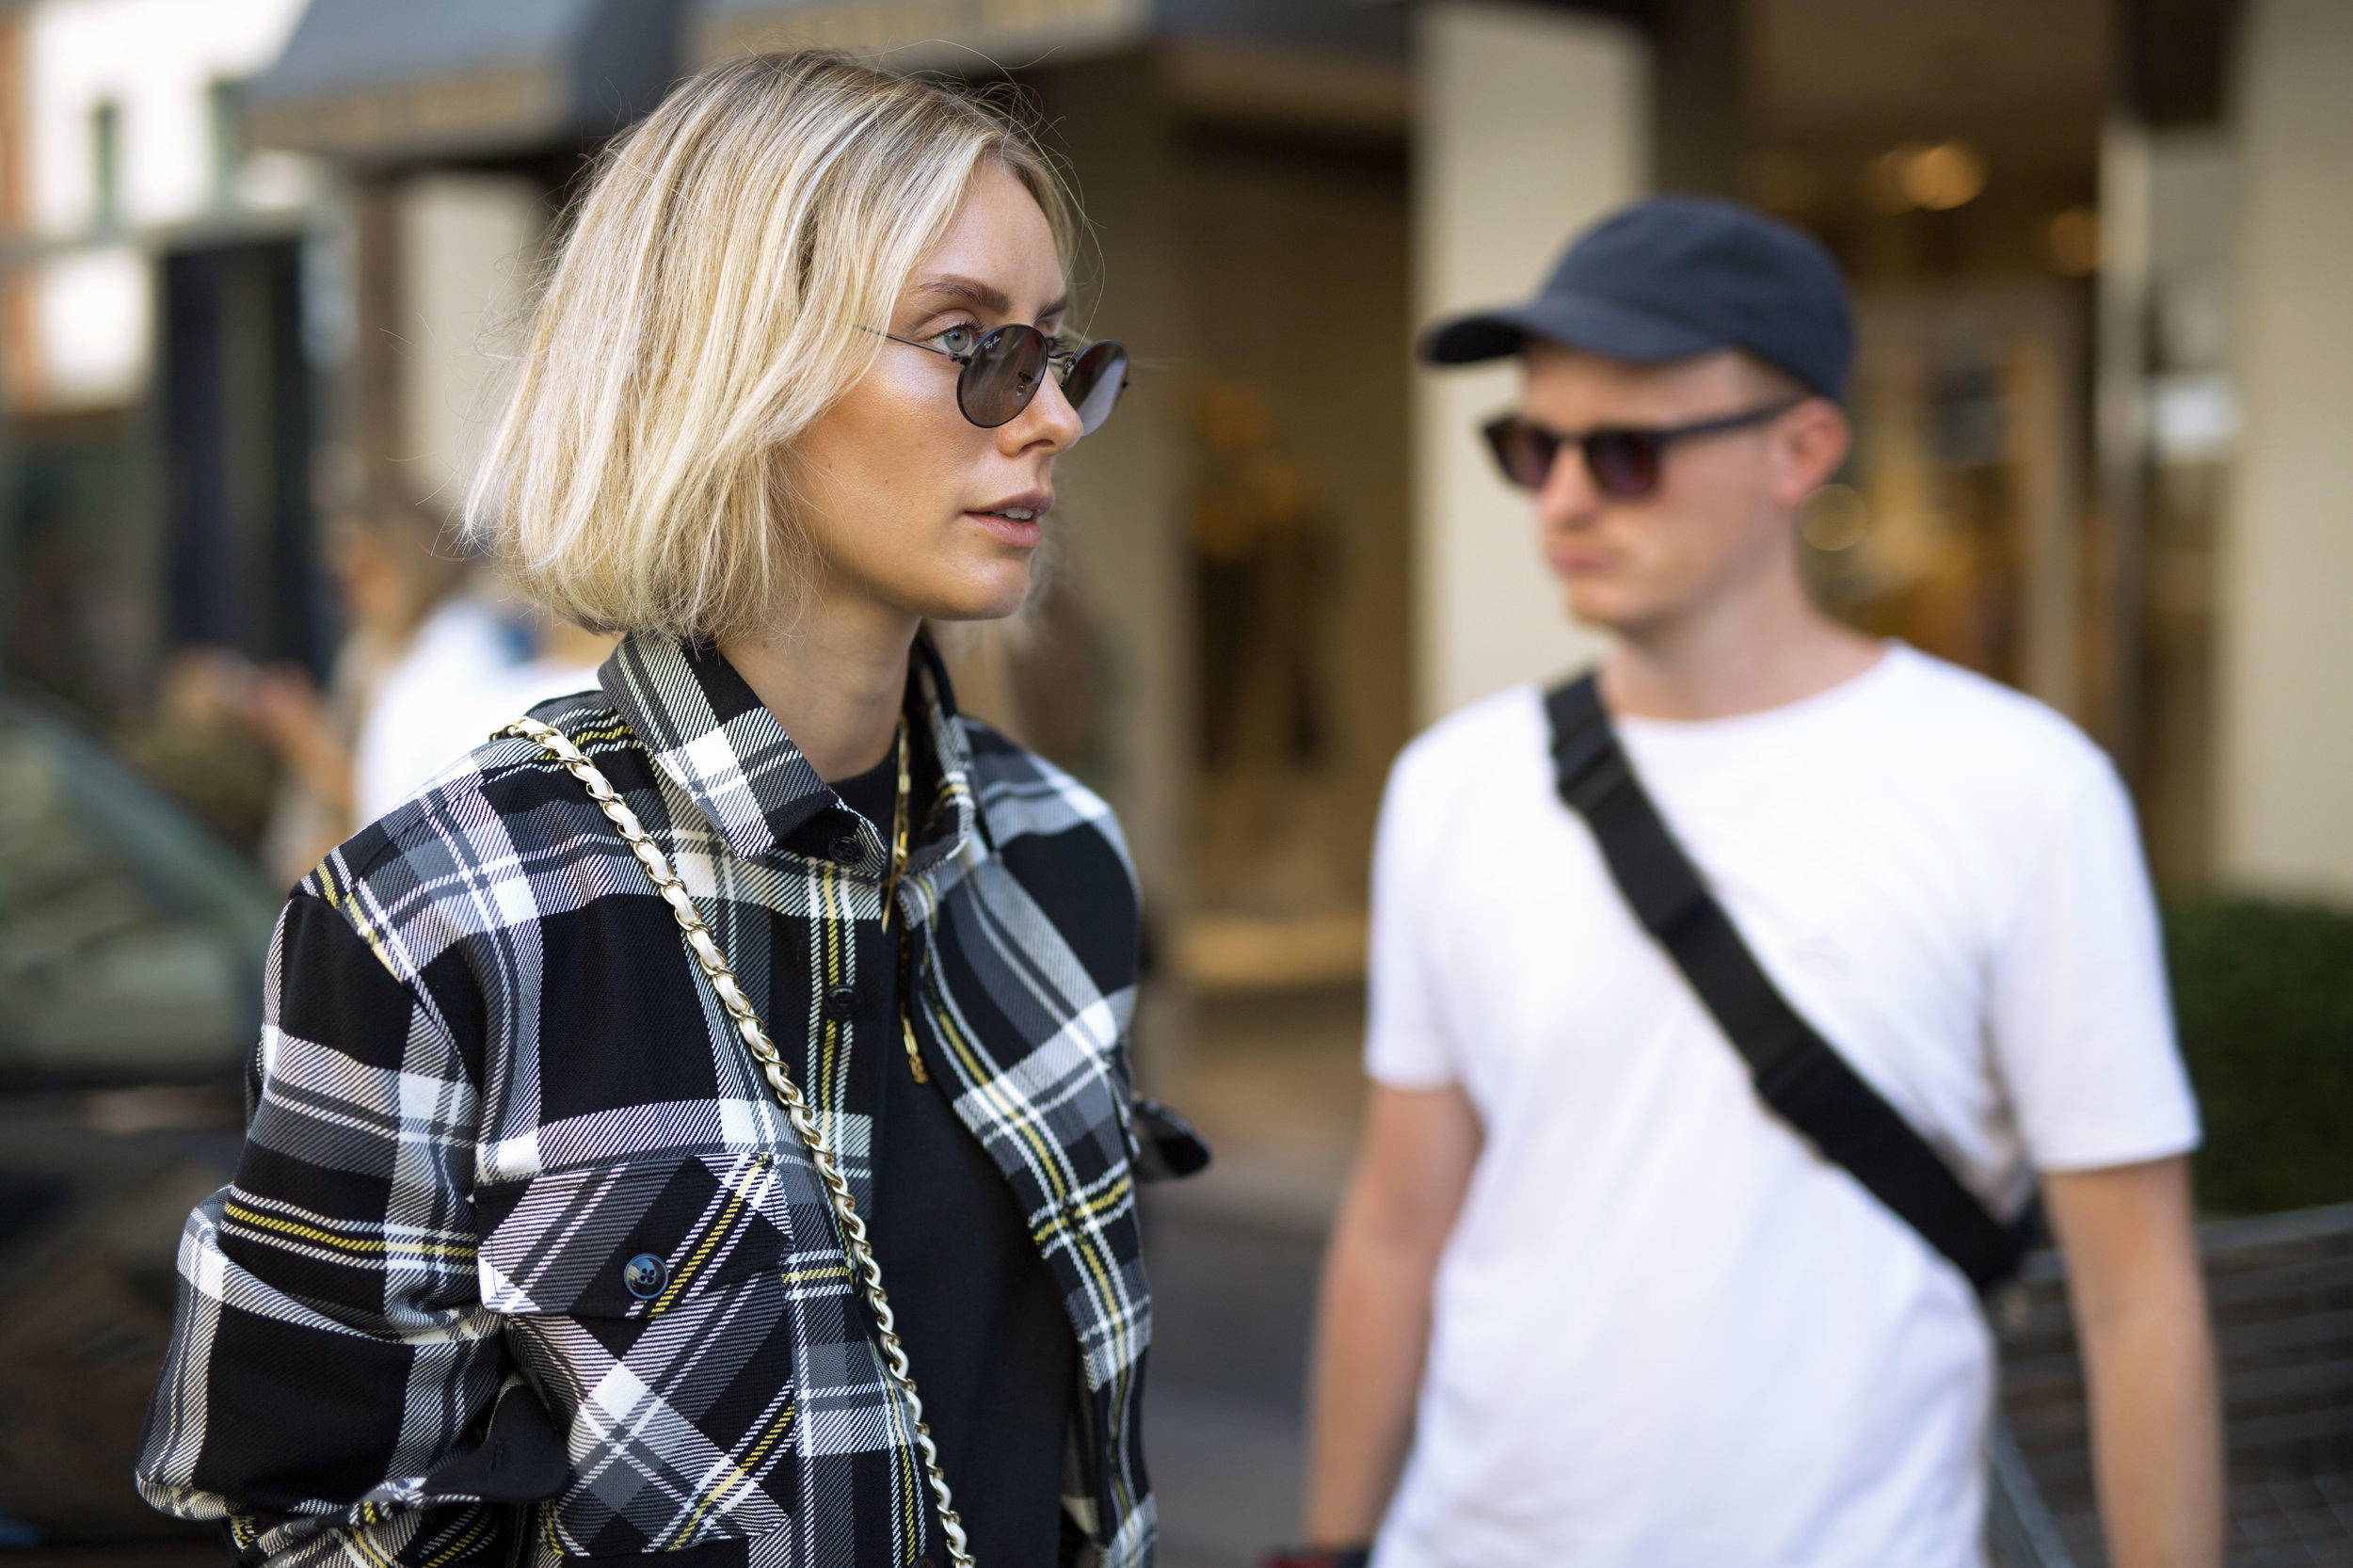 TheStreetland_Copenhagen_Fashion_Week_SS19_18.jpg